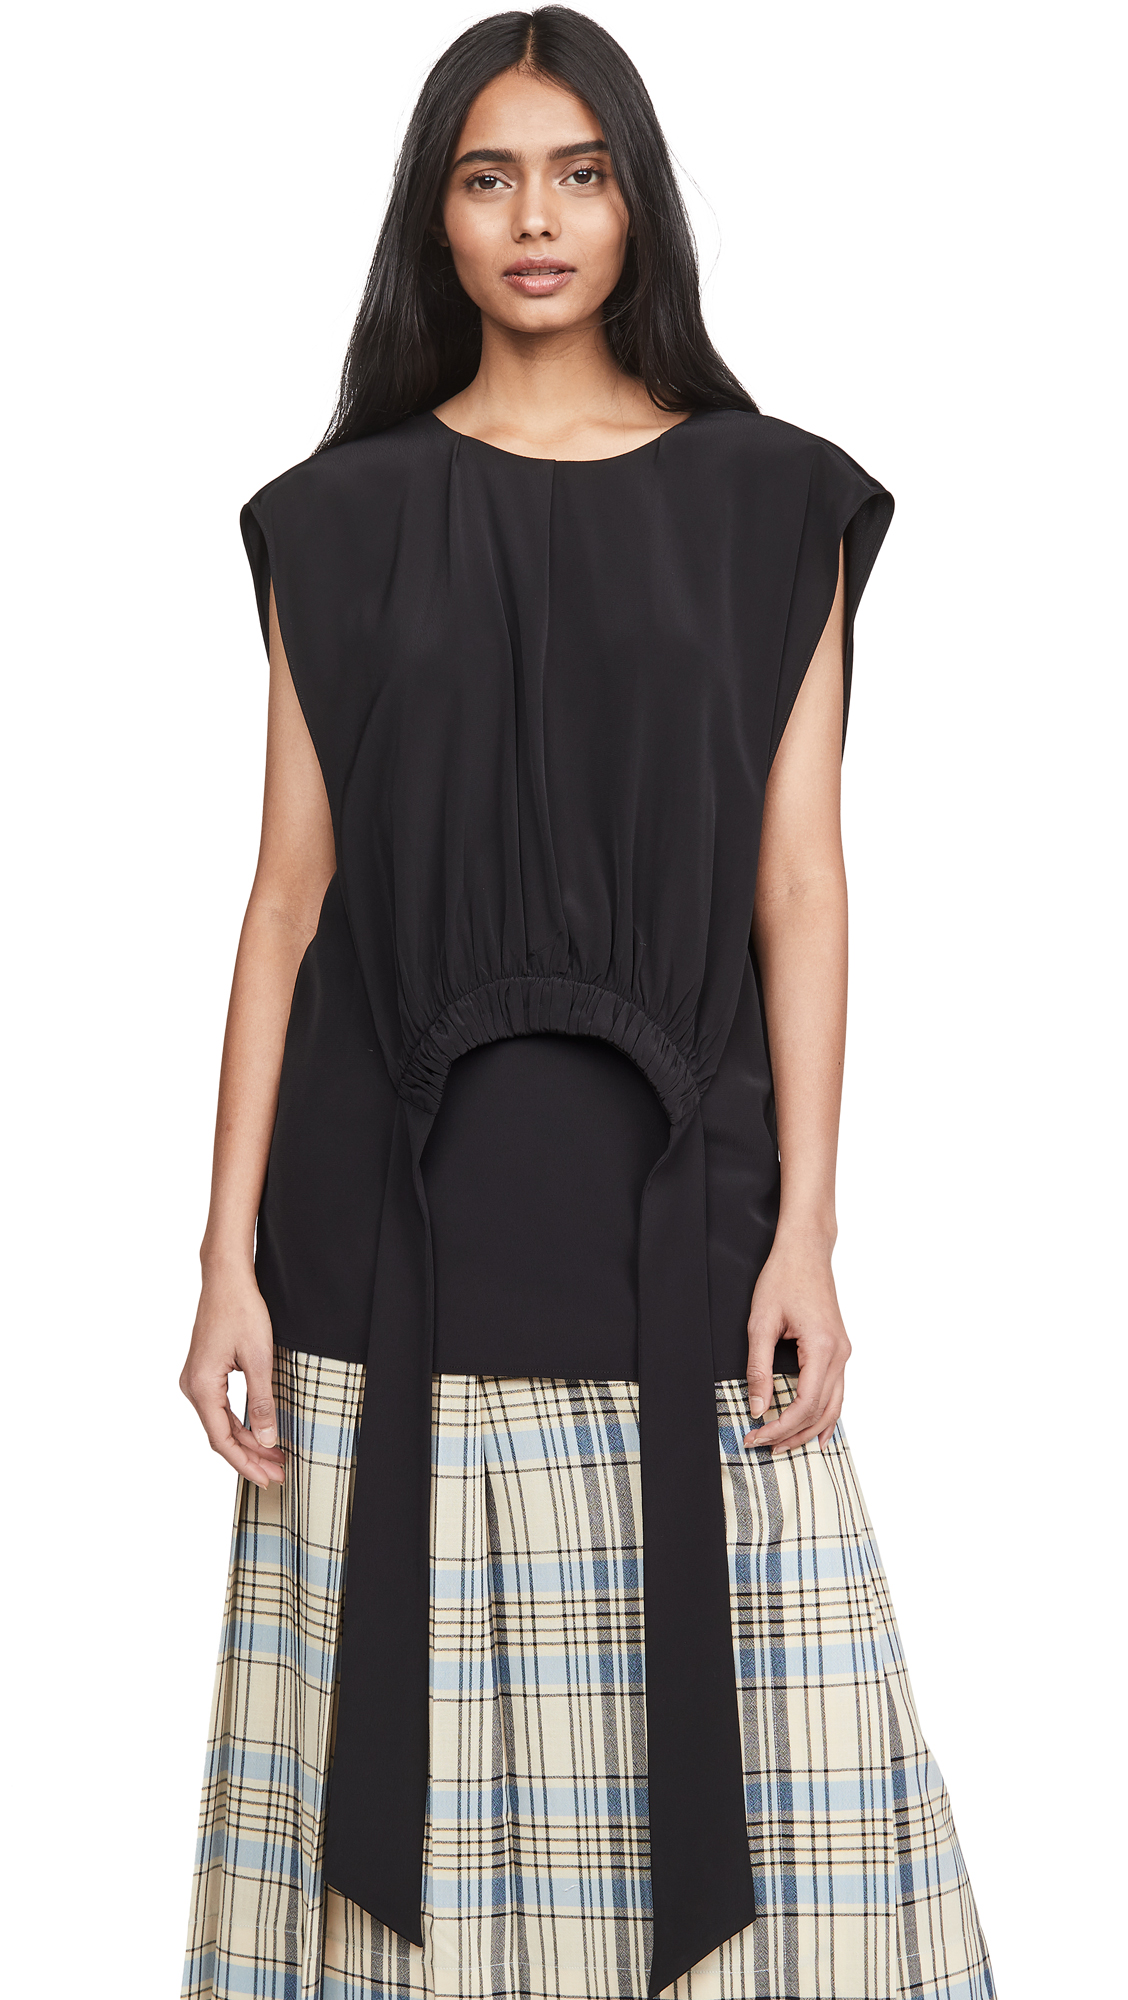 Victoria Victoria Beckham Gathered Bib Top - 30% Off Sale